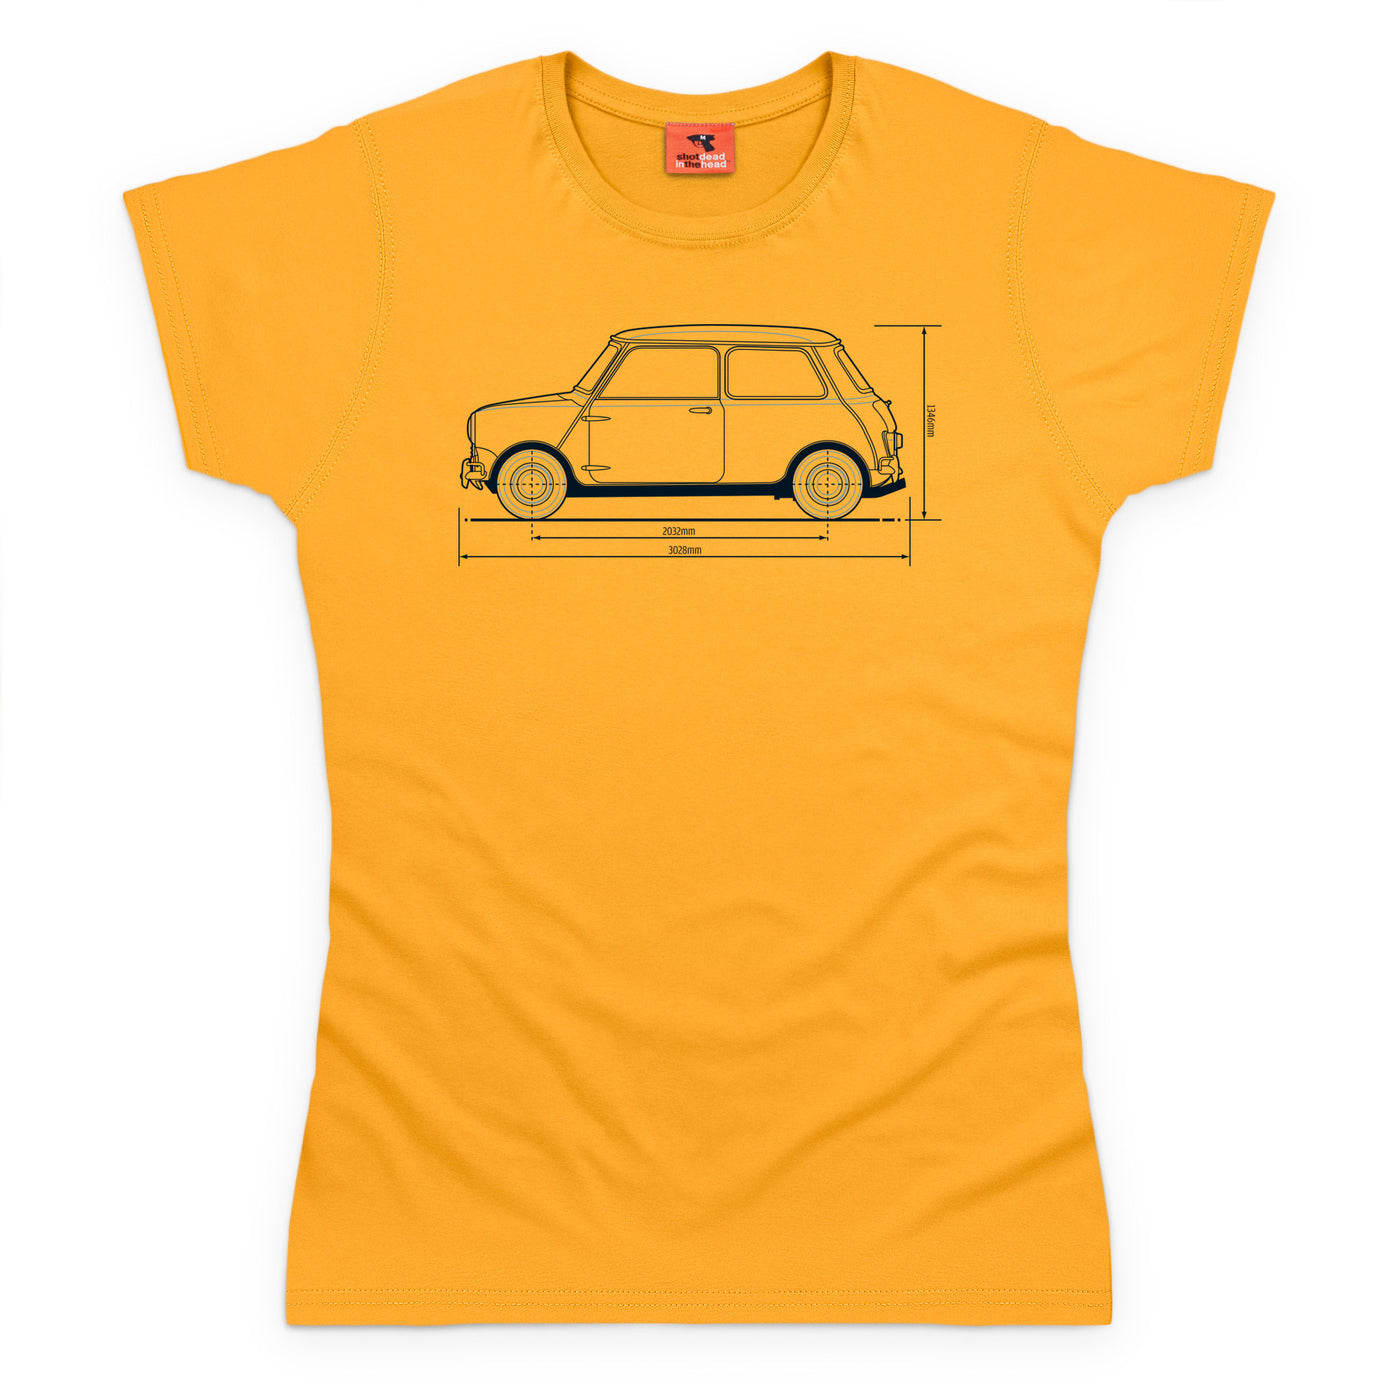 Style: Female, Color: Yellow.